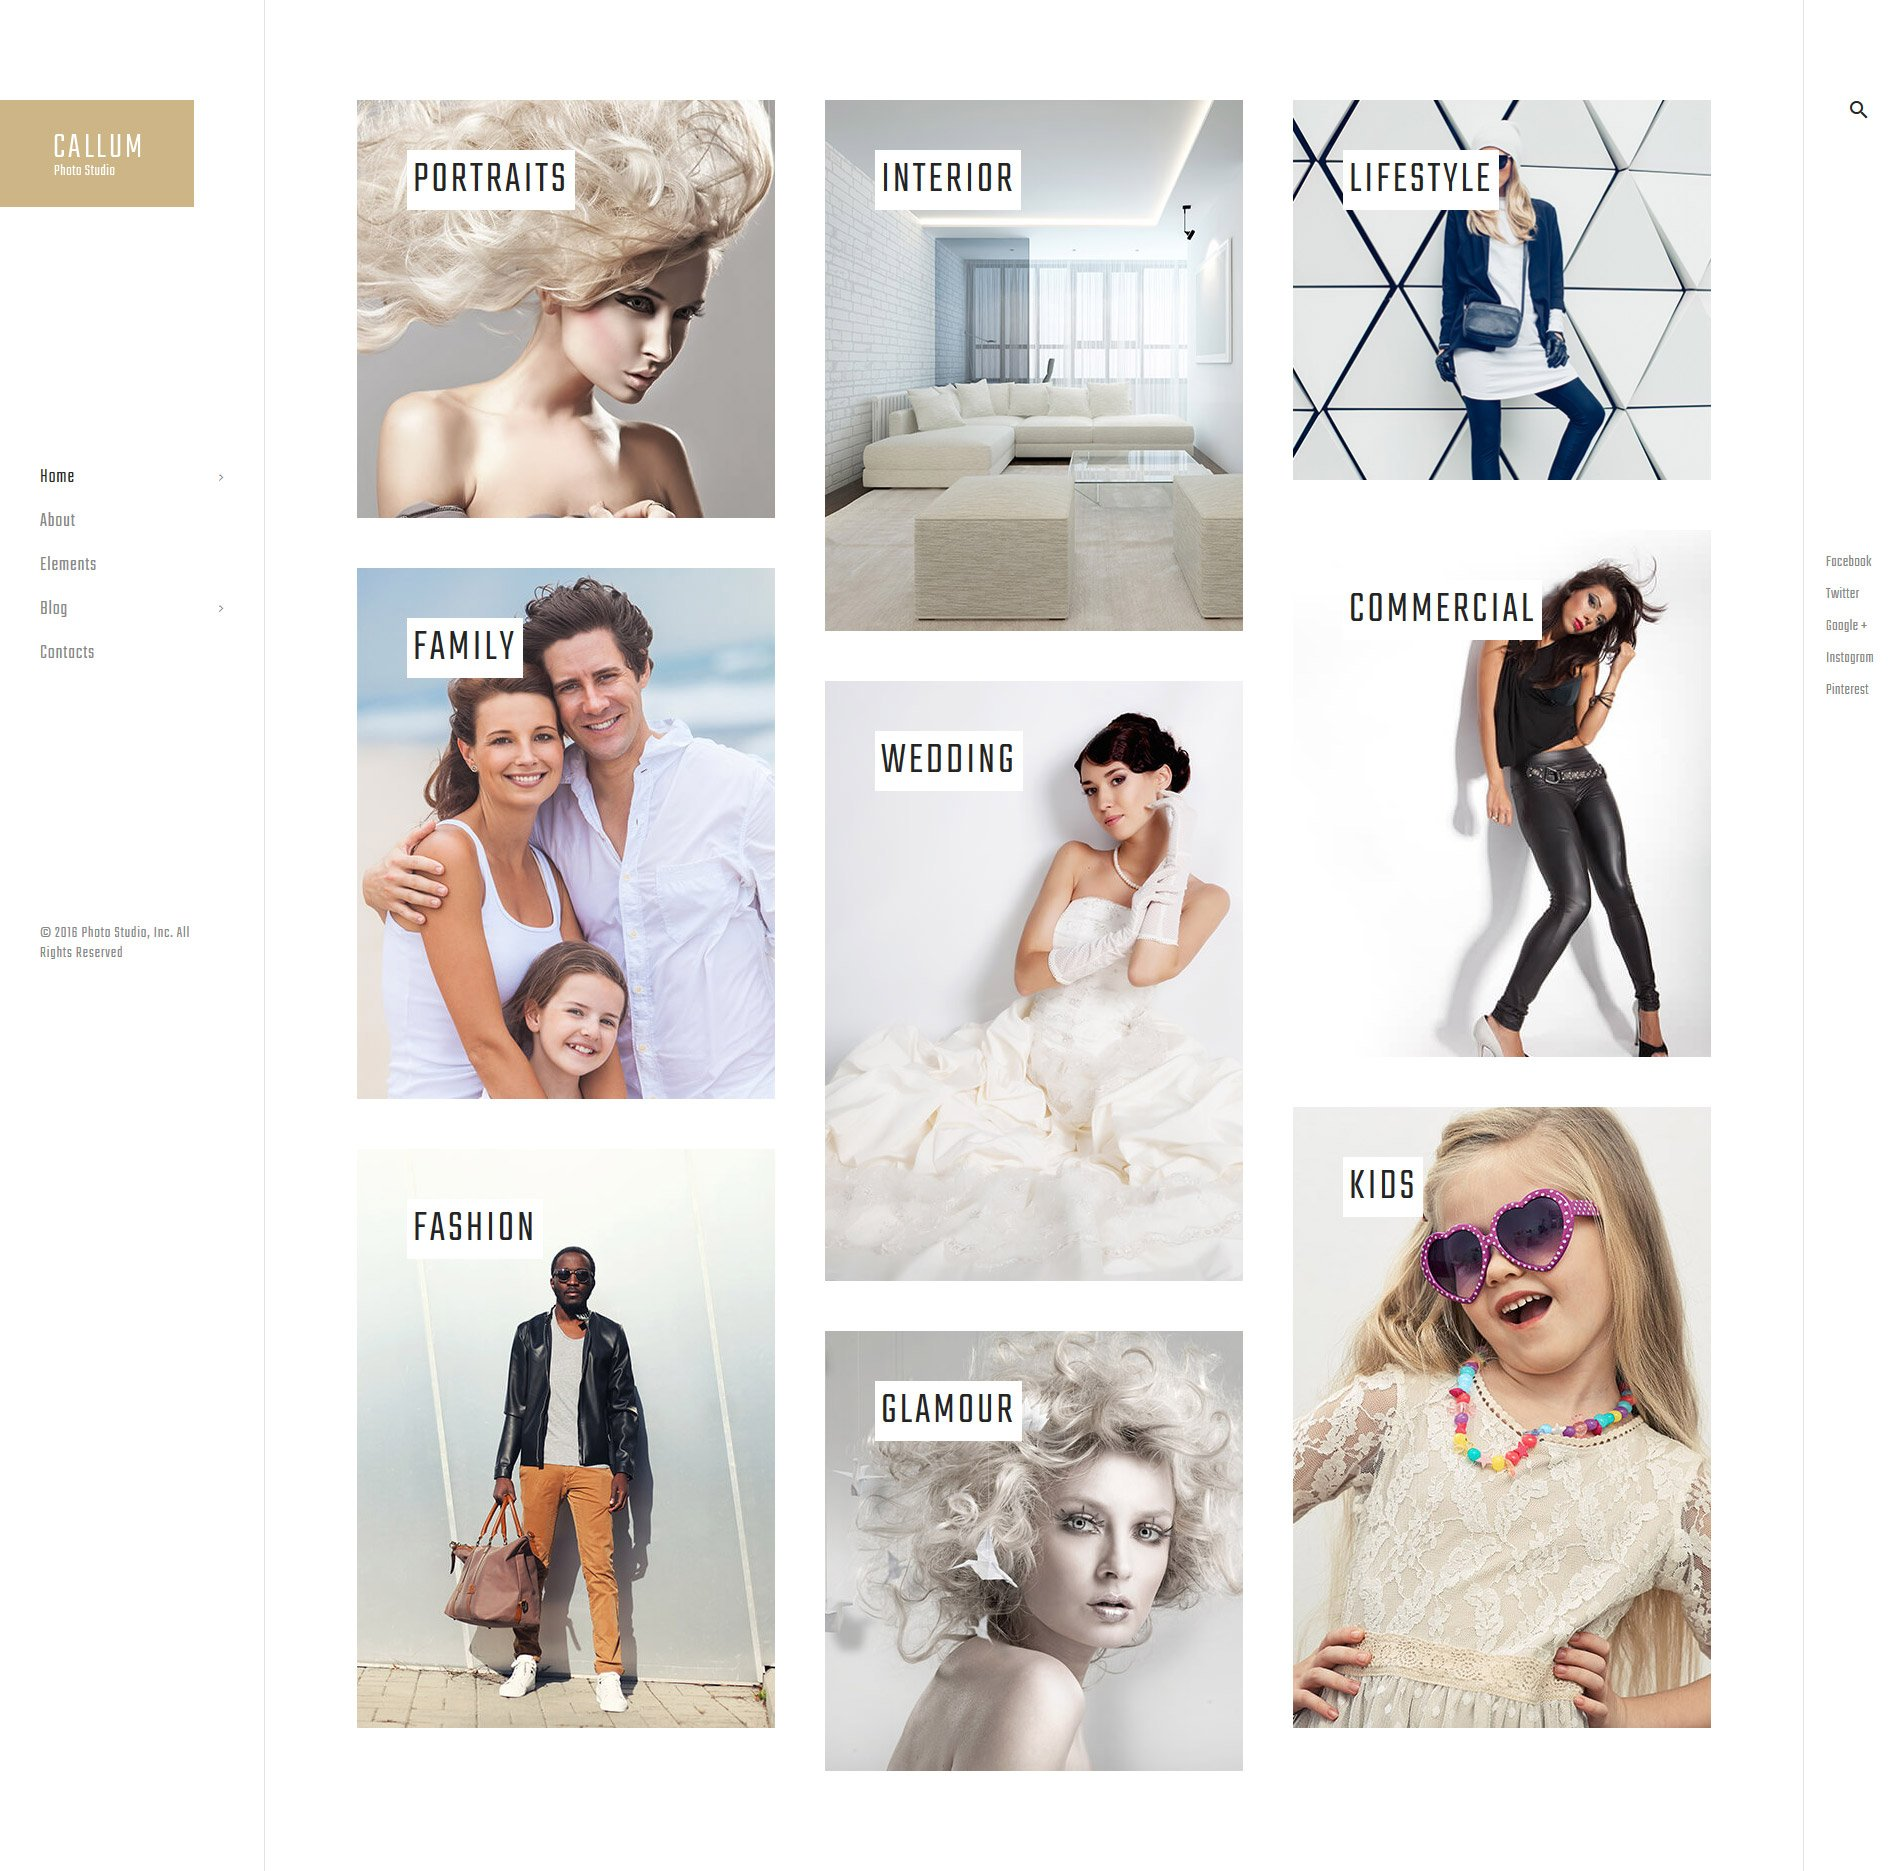 Callum - wedding photo gallery WordPress Theme